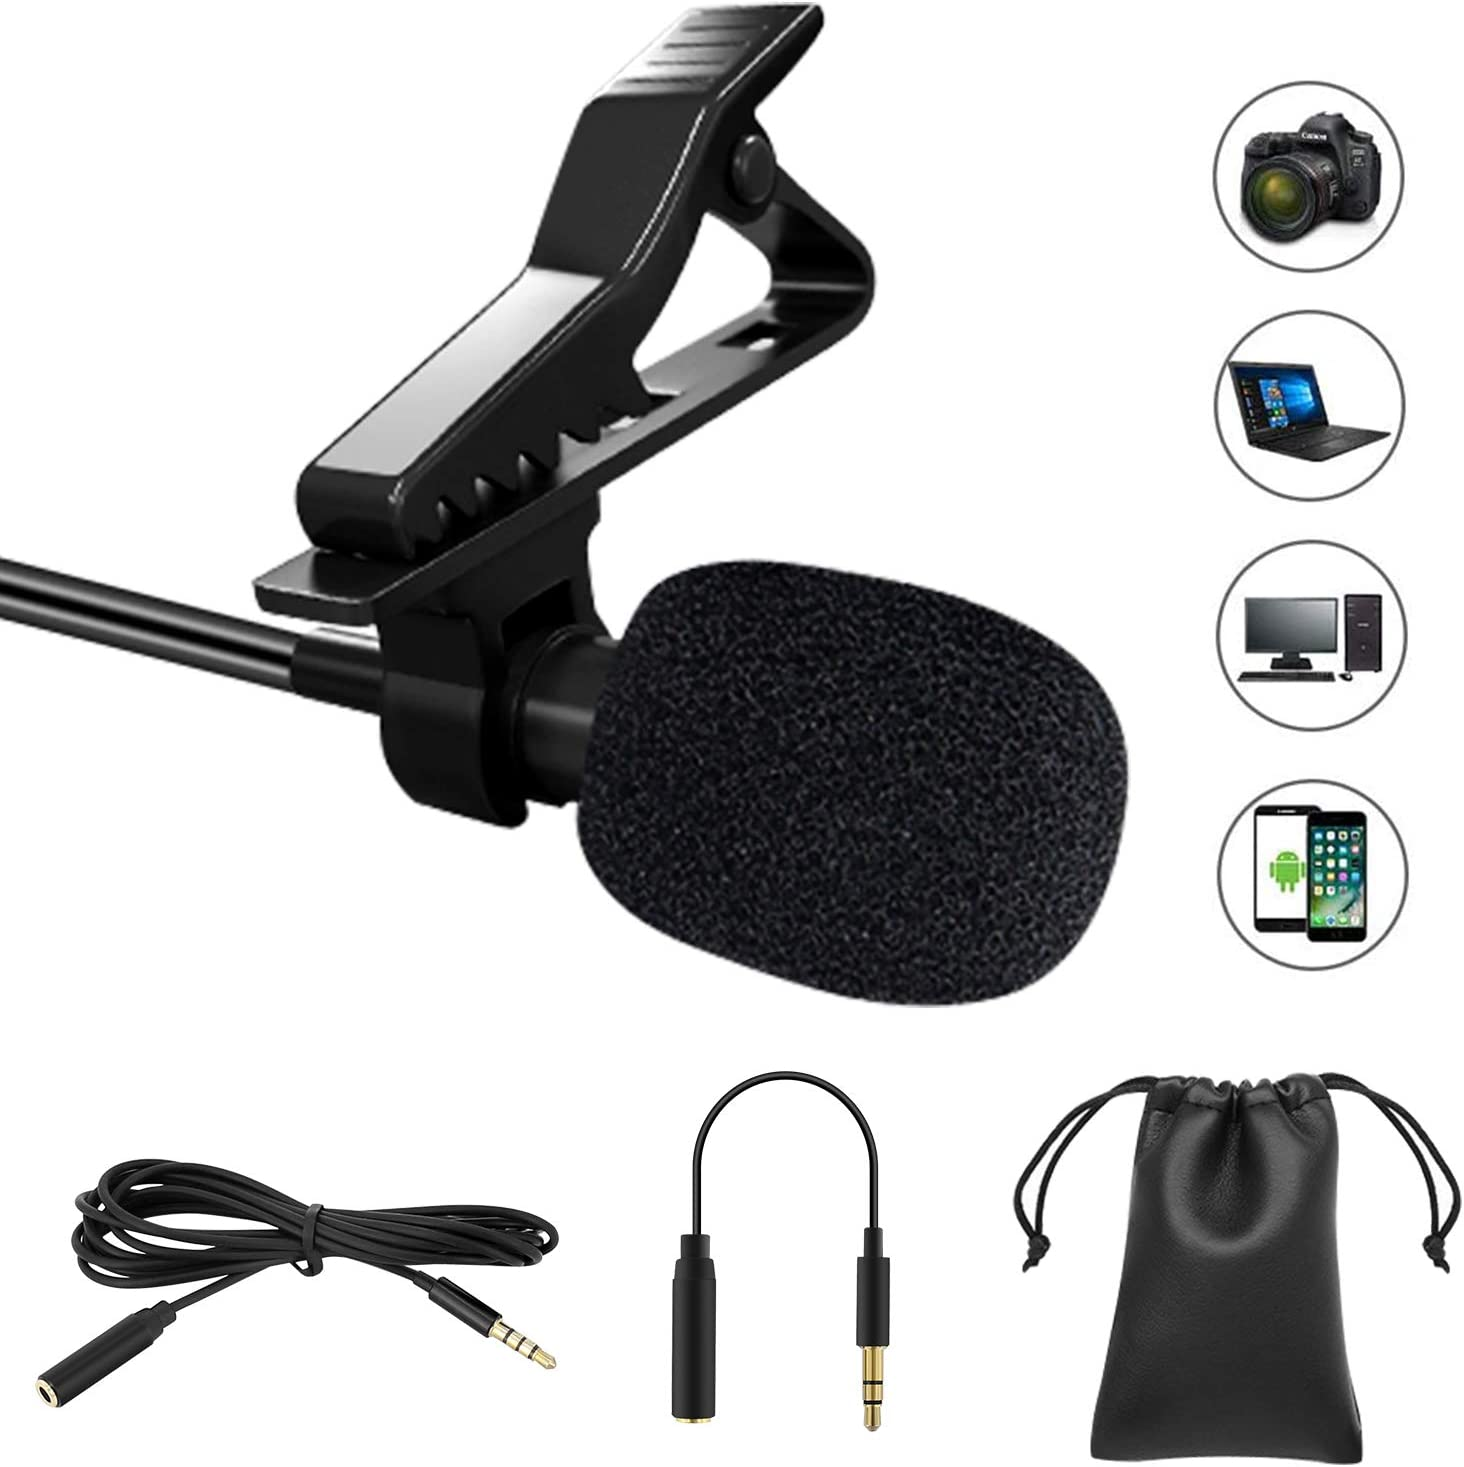 Professional Lavalier Lapel Microphone Omnidirectional Condenser Mic for Phone// Desktop PC Computer Video Conference Voice Dictation Recording Mic for Youtube Interview Podcast